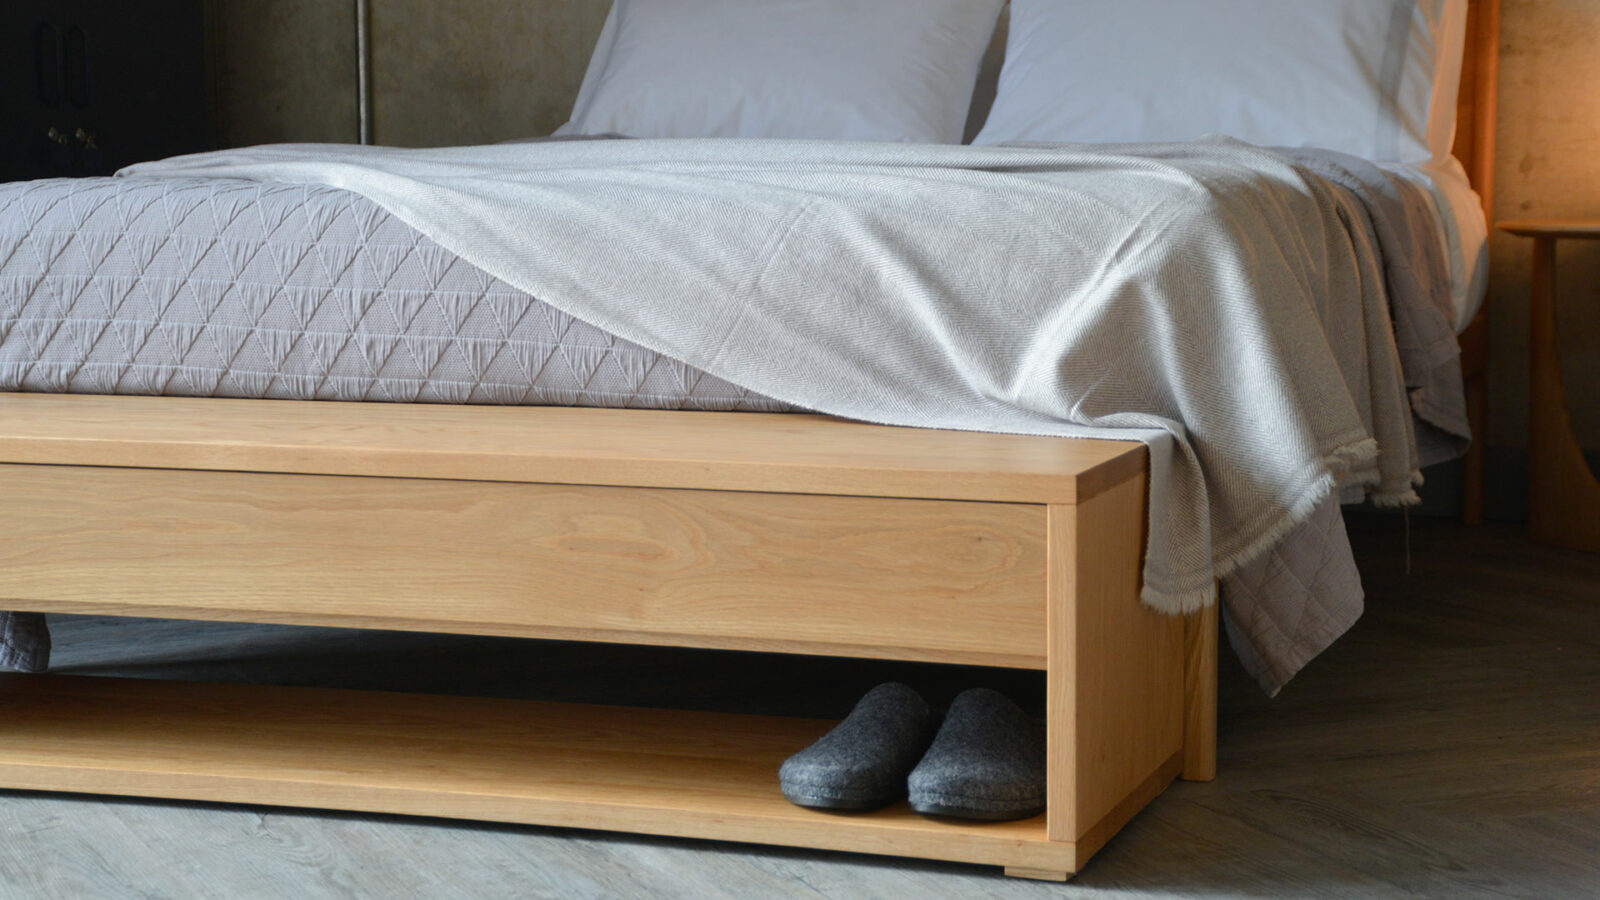 a closer view of our media unit or end of bed bench with storage drawer and open shelf, here in Oak